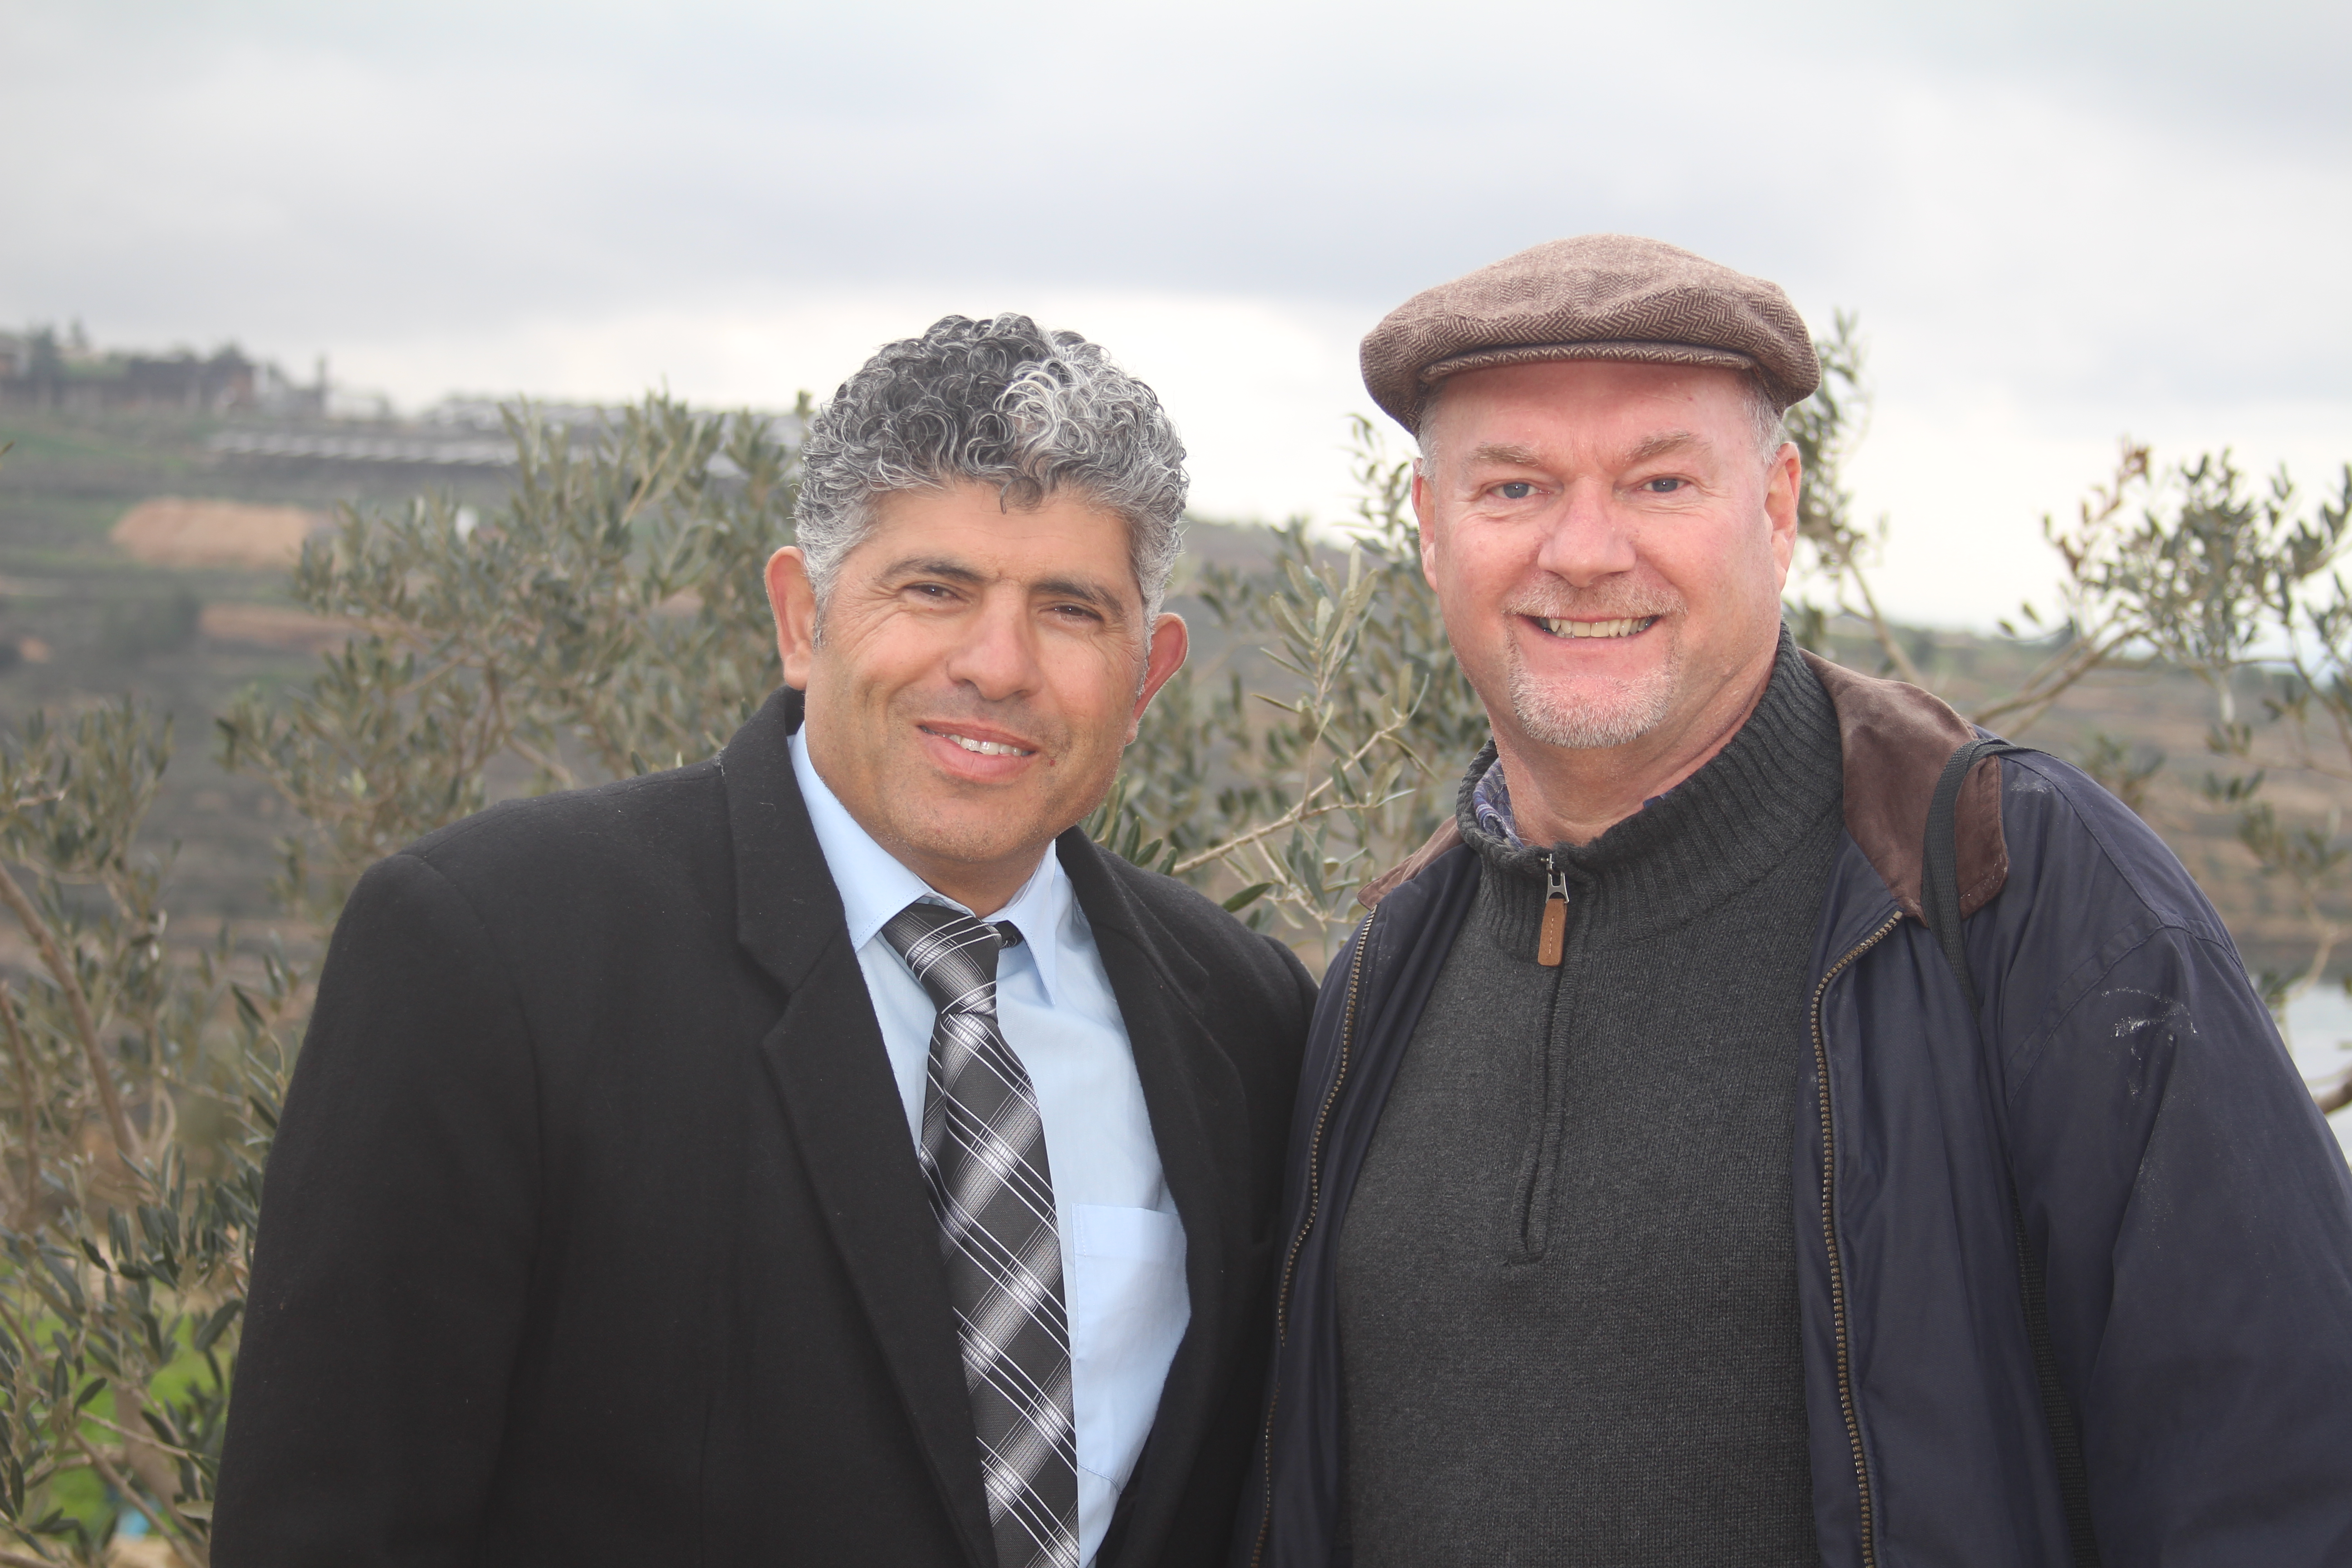 Doug with Daoud Nassar on the day the family received a joint German/Finnish Peace Prize for their work and commitment to peace and non-violence. Photo: Rev. Kristen L. Brown